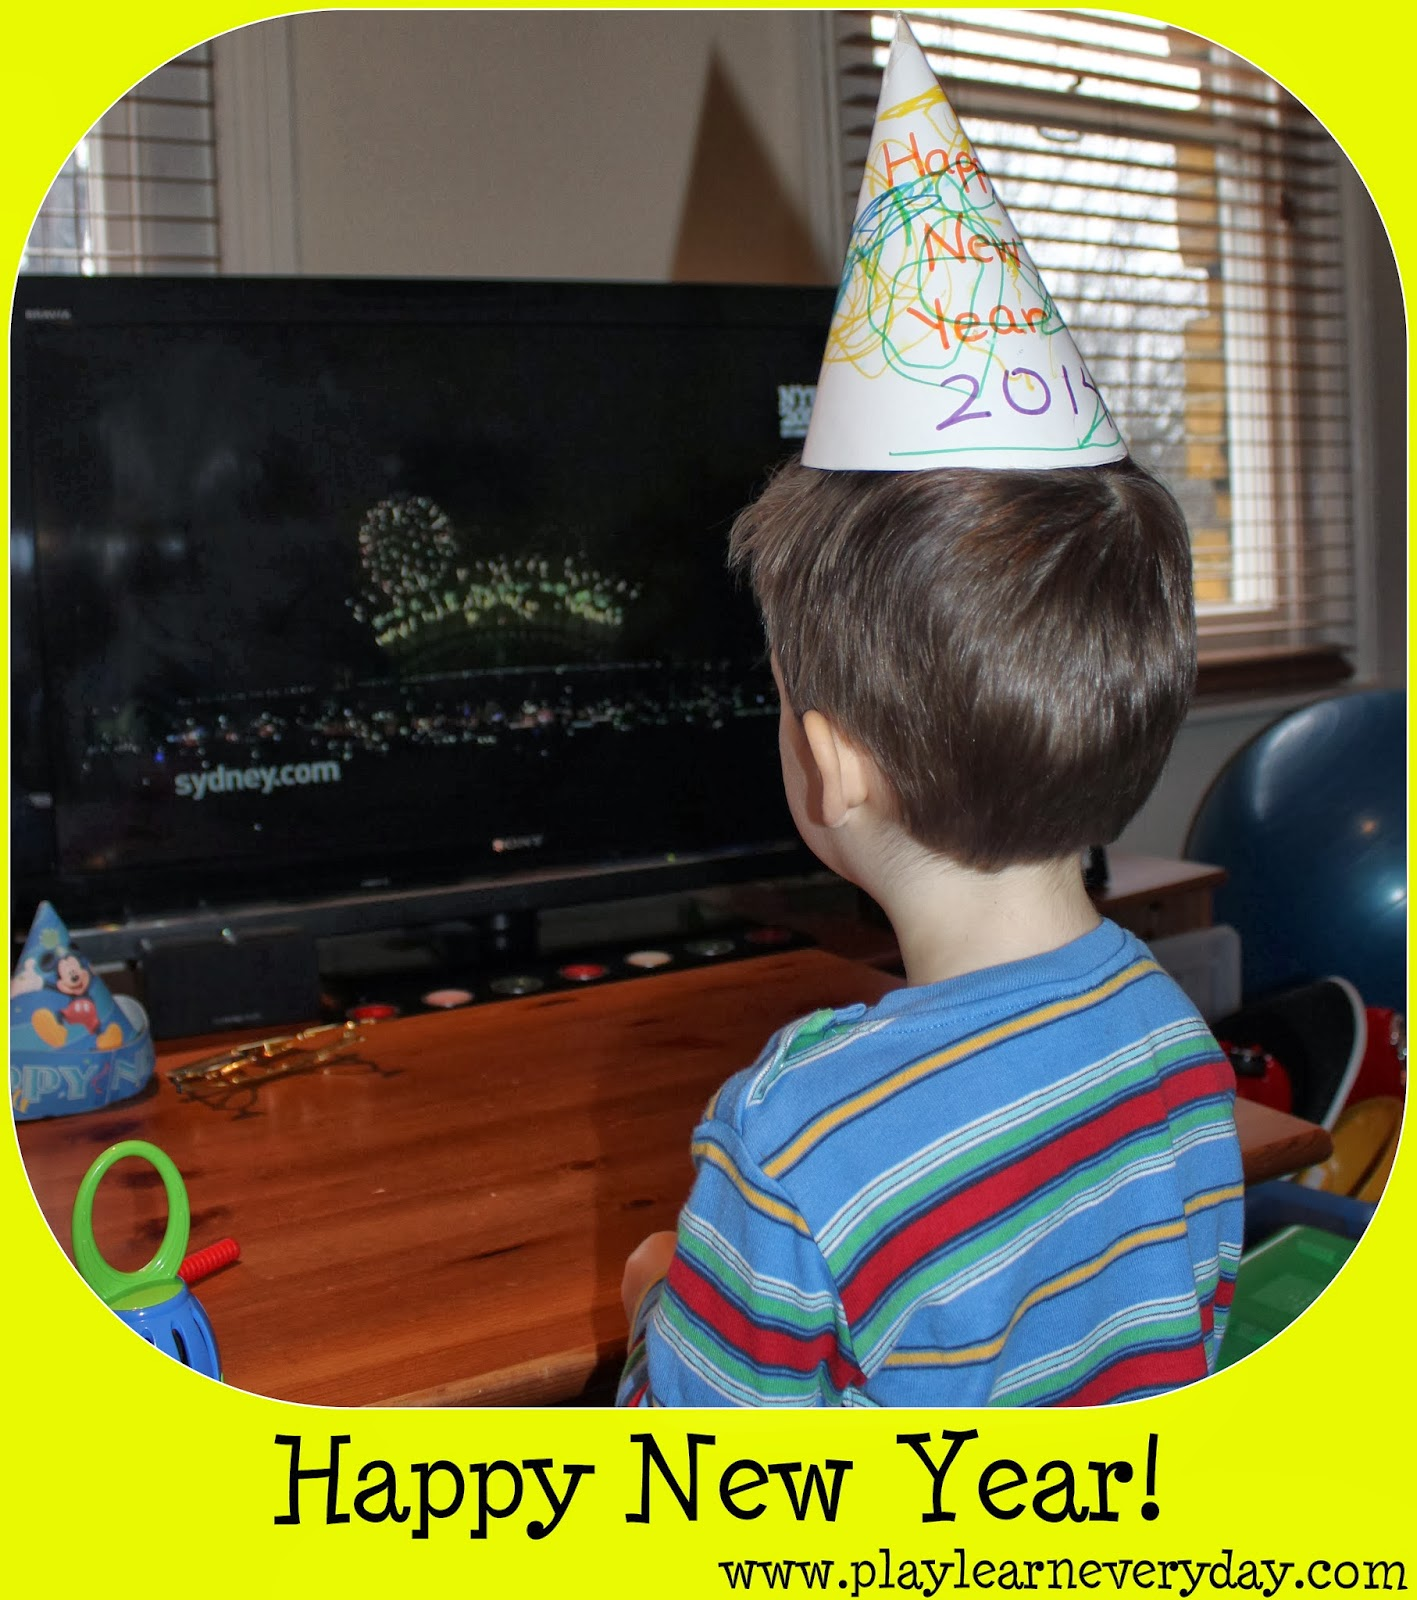 ethan was so excited hes been saying happy new year all day and couldnt wait to see the fireworks we decorated his hat together before lunch